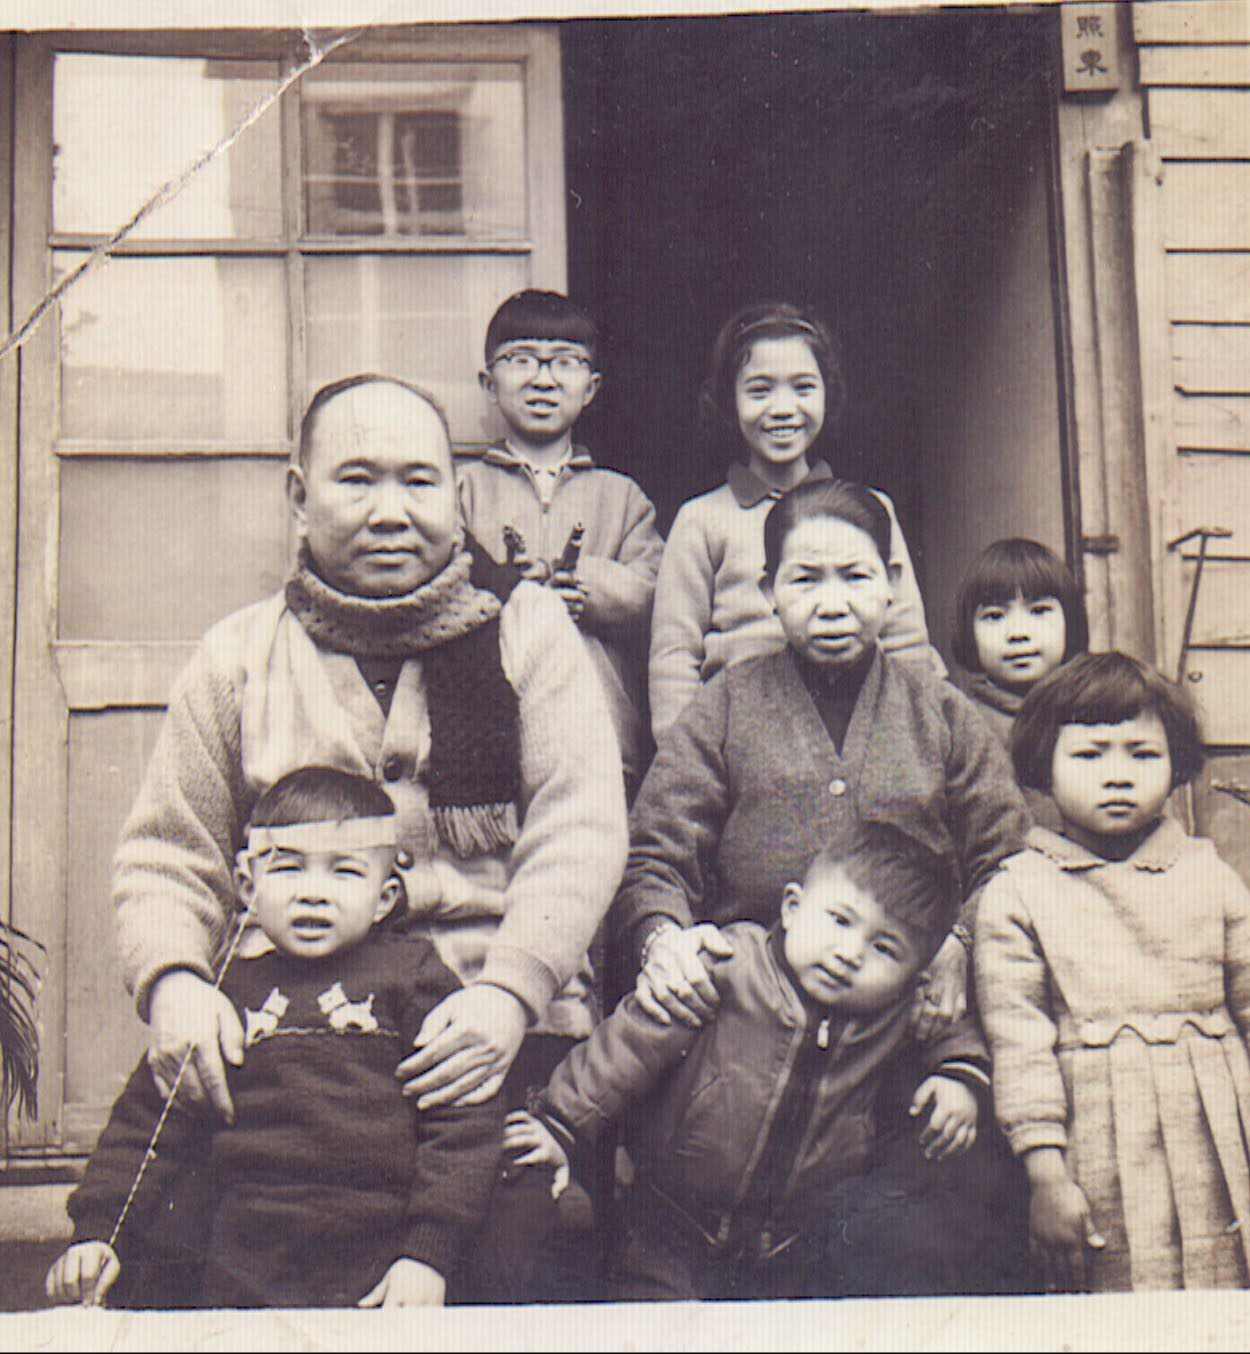 70 years ago, - My relatives fled from China by boat to Taiwan. That was only four generations ago. They set up their lives in Taipei, and worked primarily as merchants and shop owners.